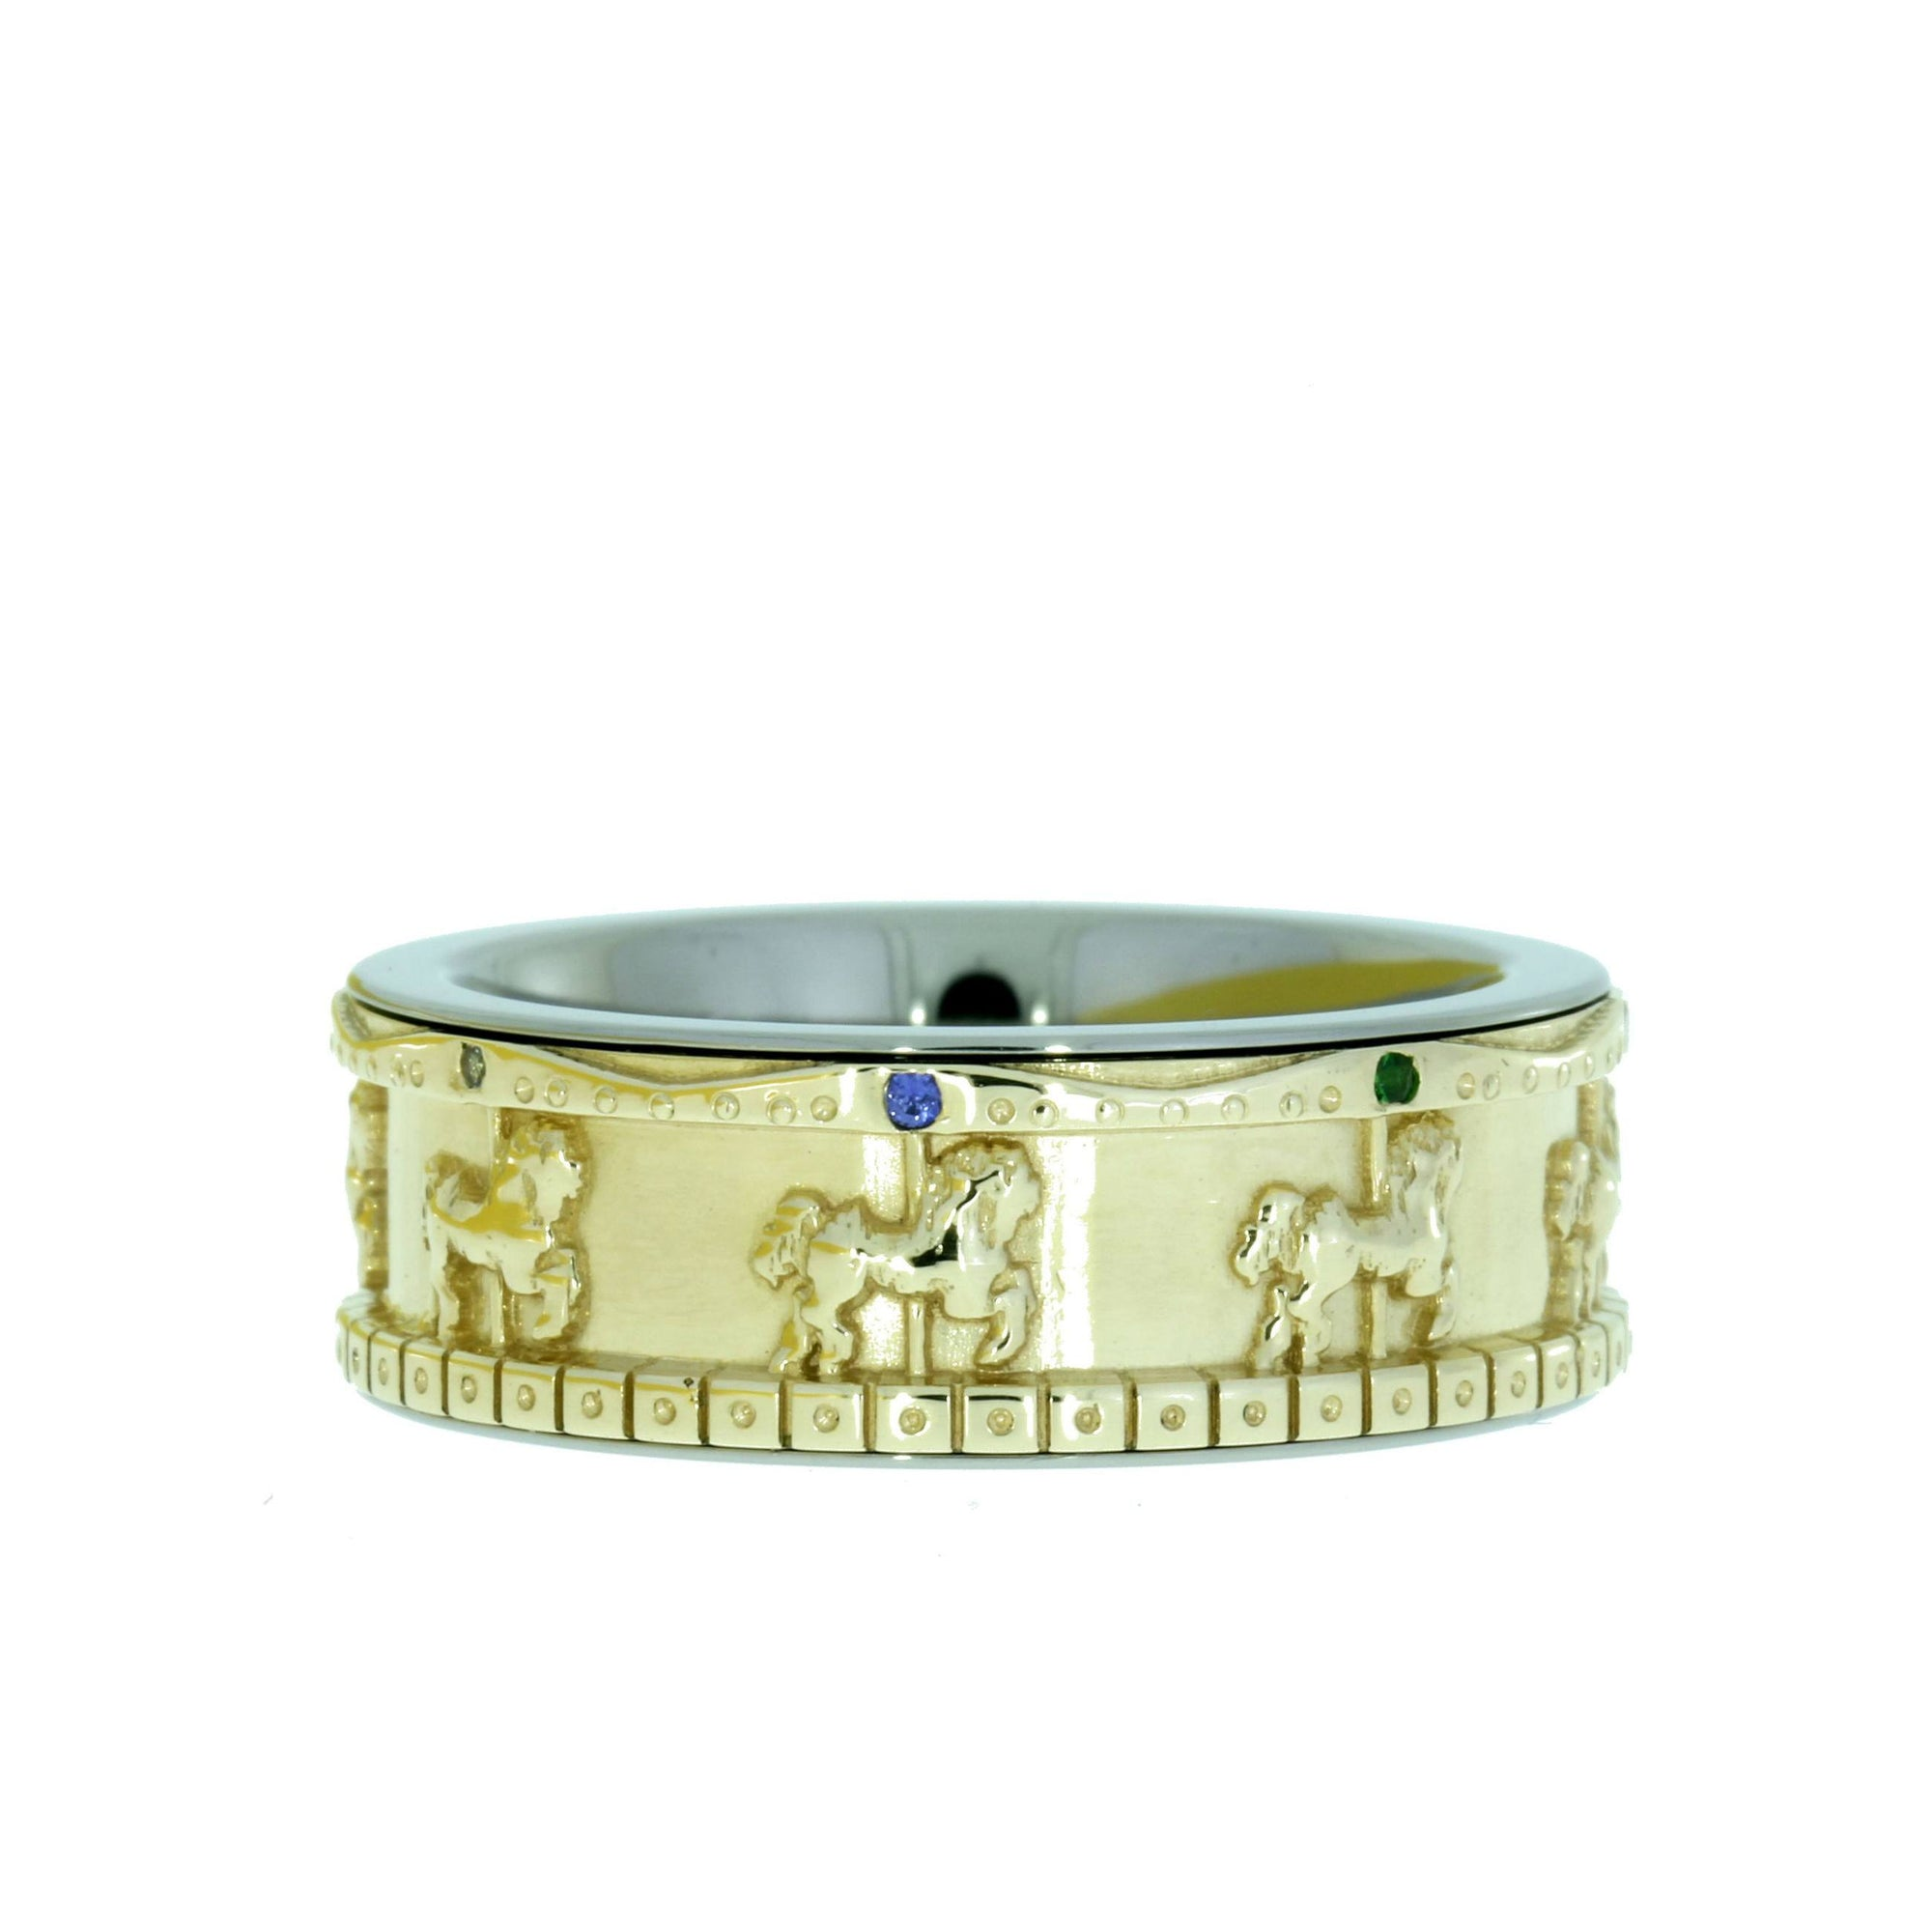 Old-Fashioned Carousel Ring, 14K Yellow Gold Merry-Go-Round Ring with Colorful Stones-1511 - Jewelry by Johan